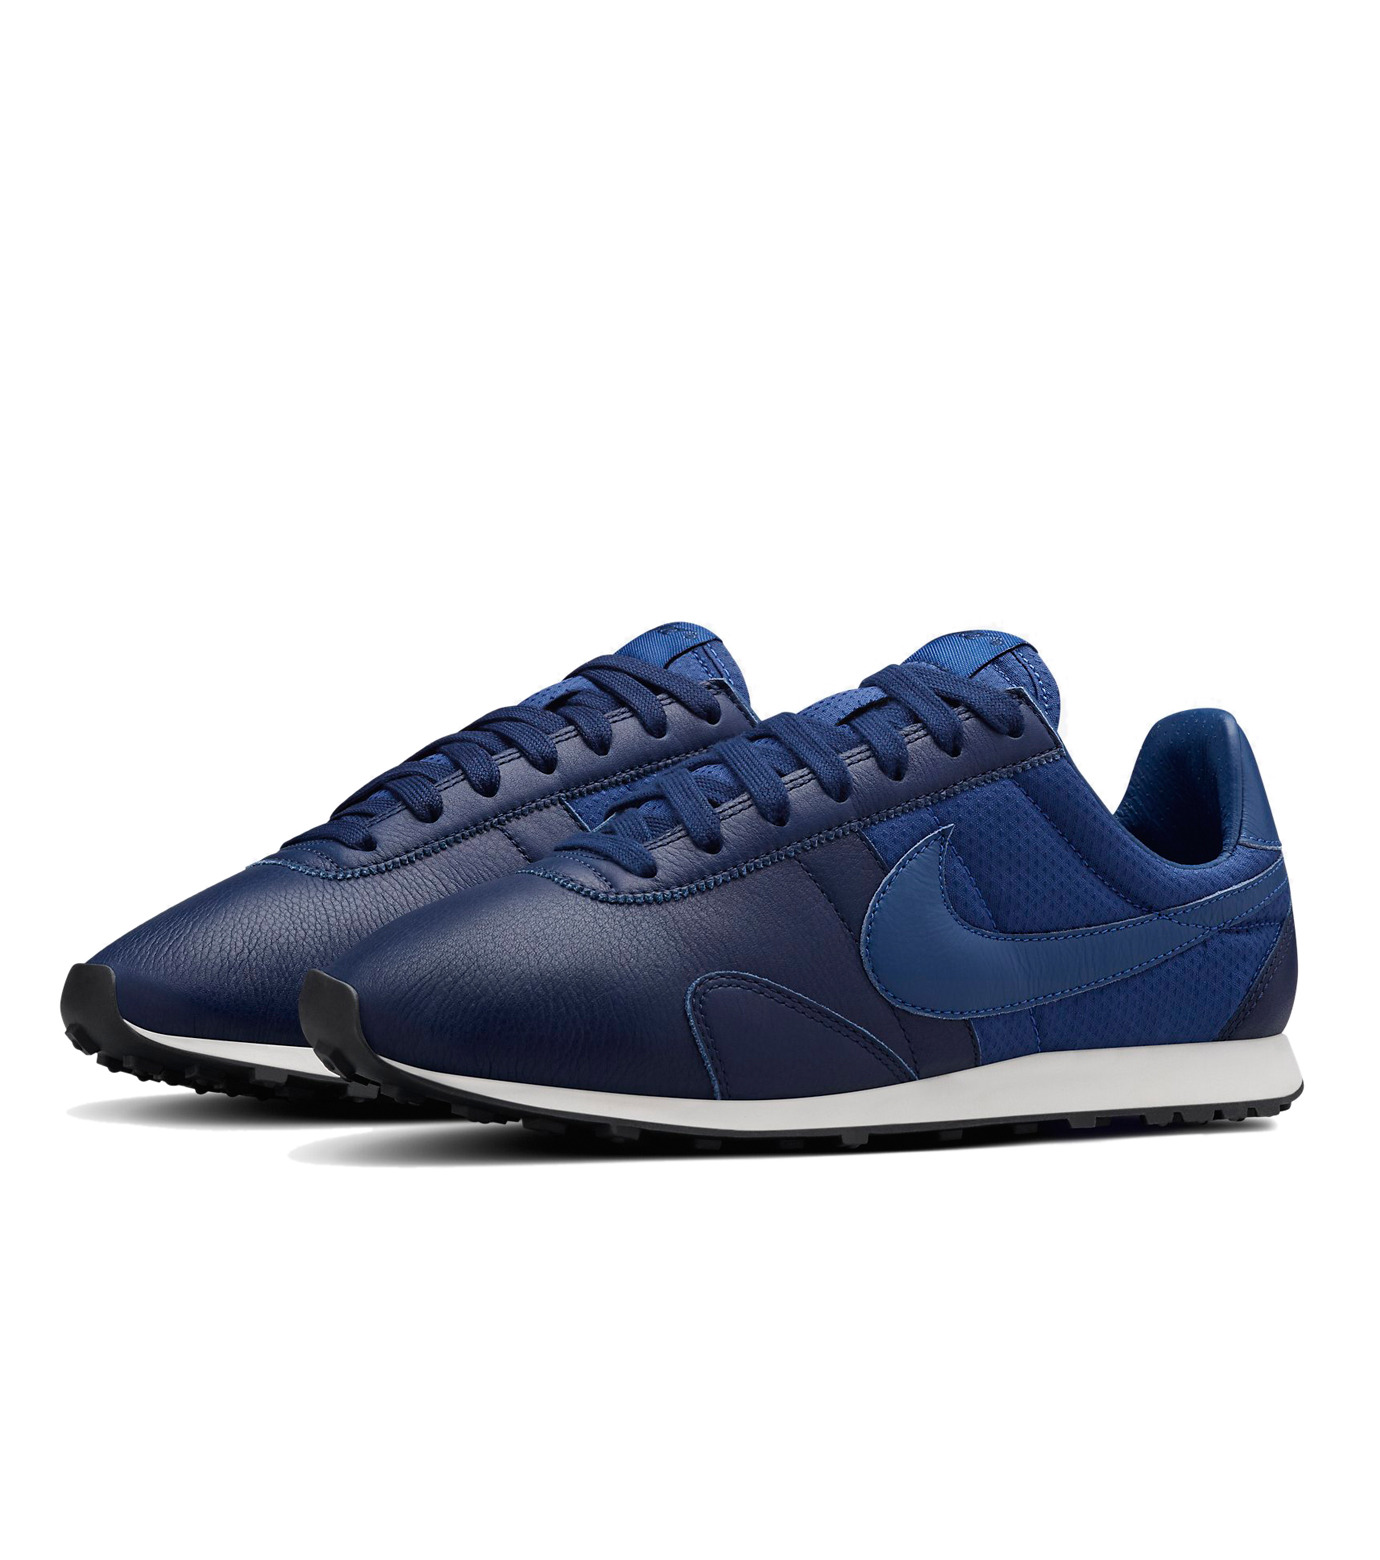 NIKE(ナイキ)のWMNS Pre Montreal Racer Pinnacle-BLUE(シューズ/shoes)-839605-400-92 拡大詳細画像3